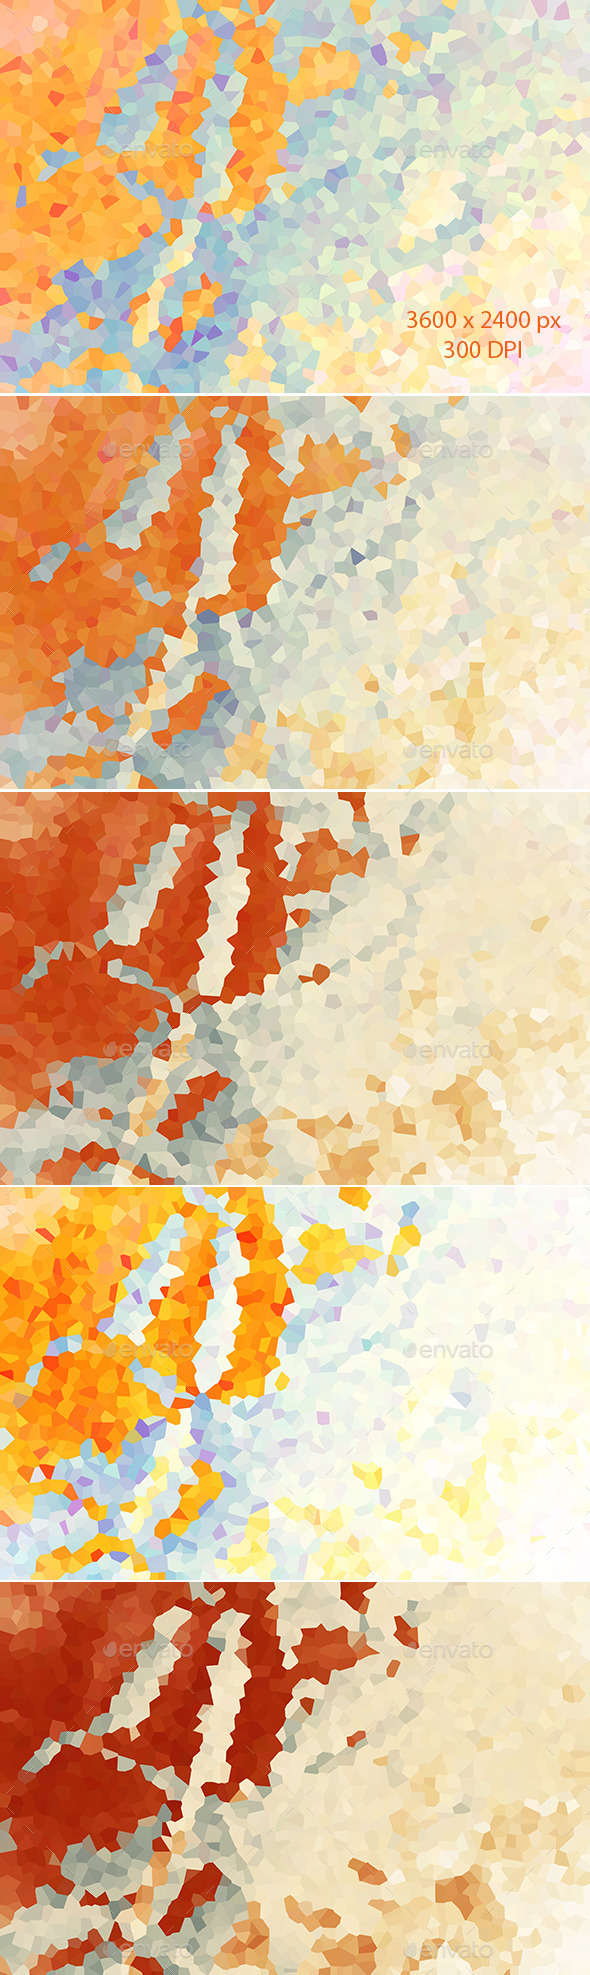 Colorful Abstract Polygon Backgrounds  - Abstract Backgrounds